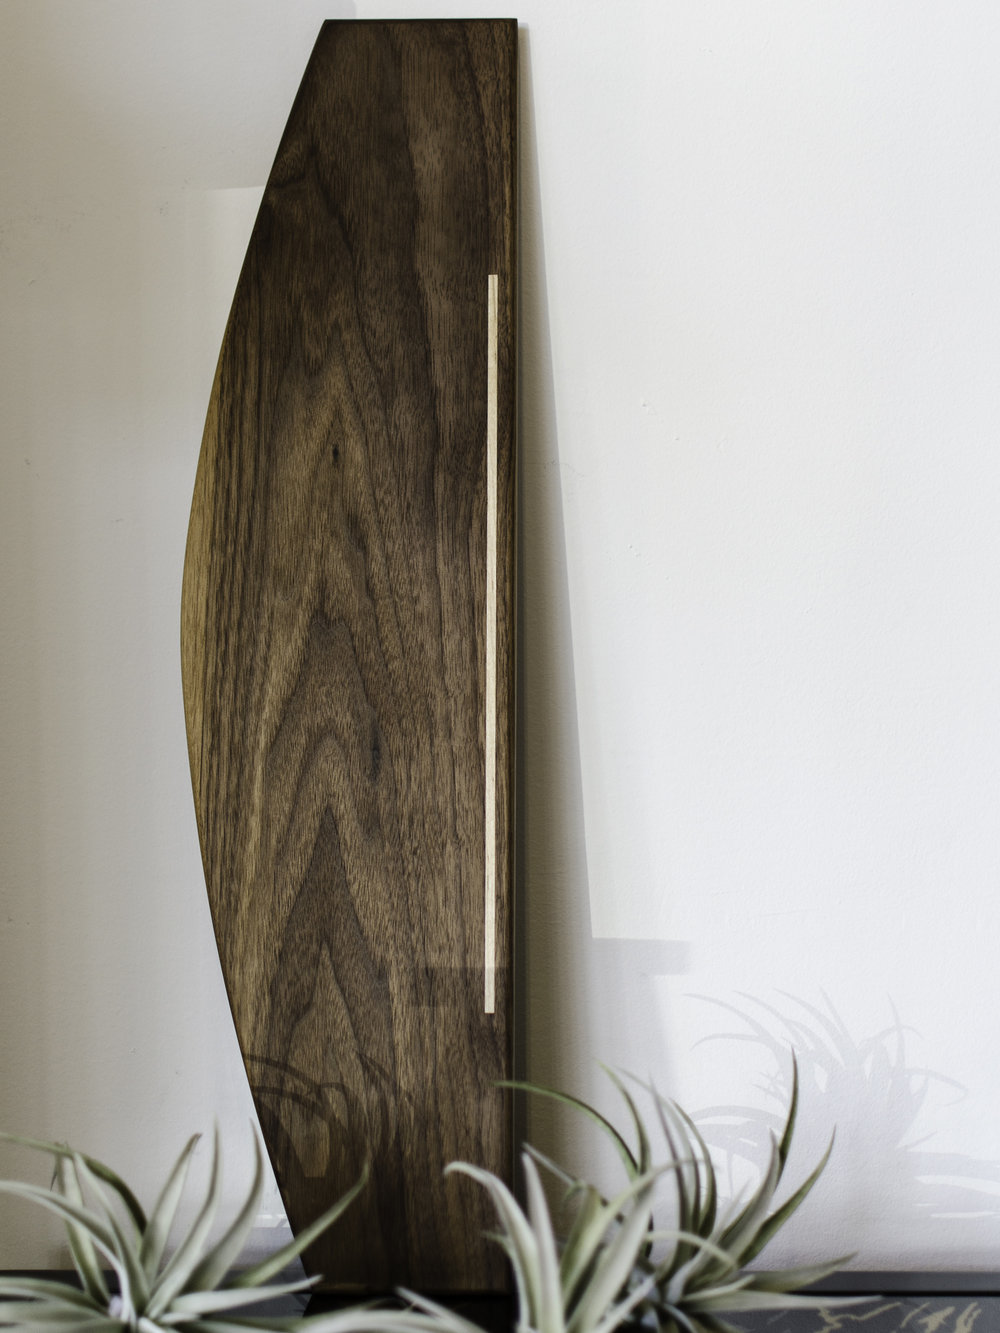 Allison SamuelsServing Board - This piece has the most beautiful inlay and striking overall shape. I can picture my mom piling snacks on top to offer to her friends when they stop by, being the great host she is!